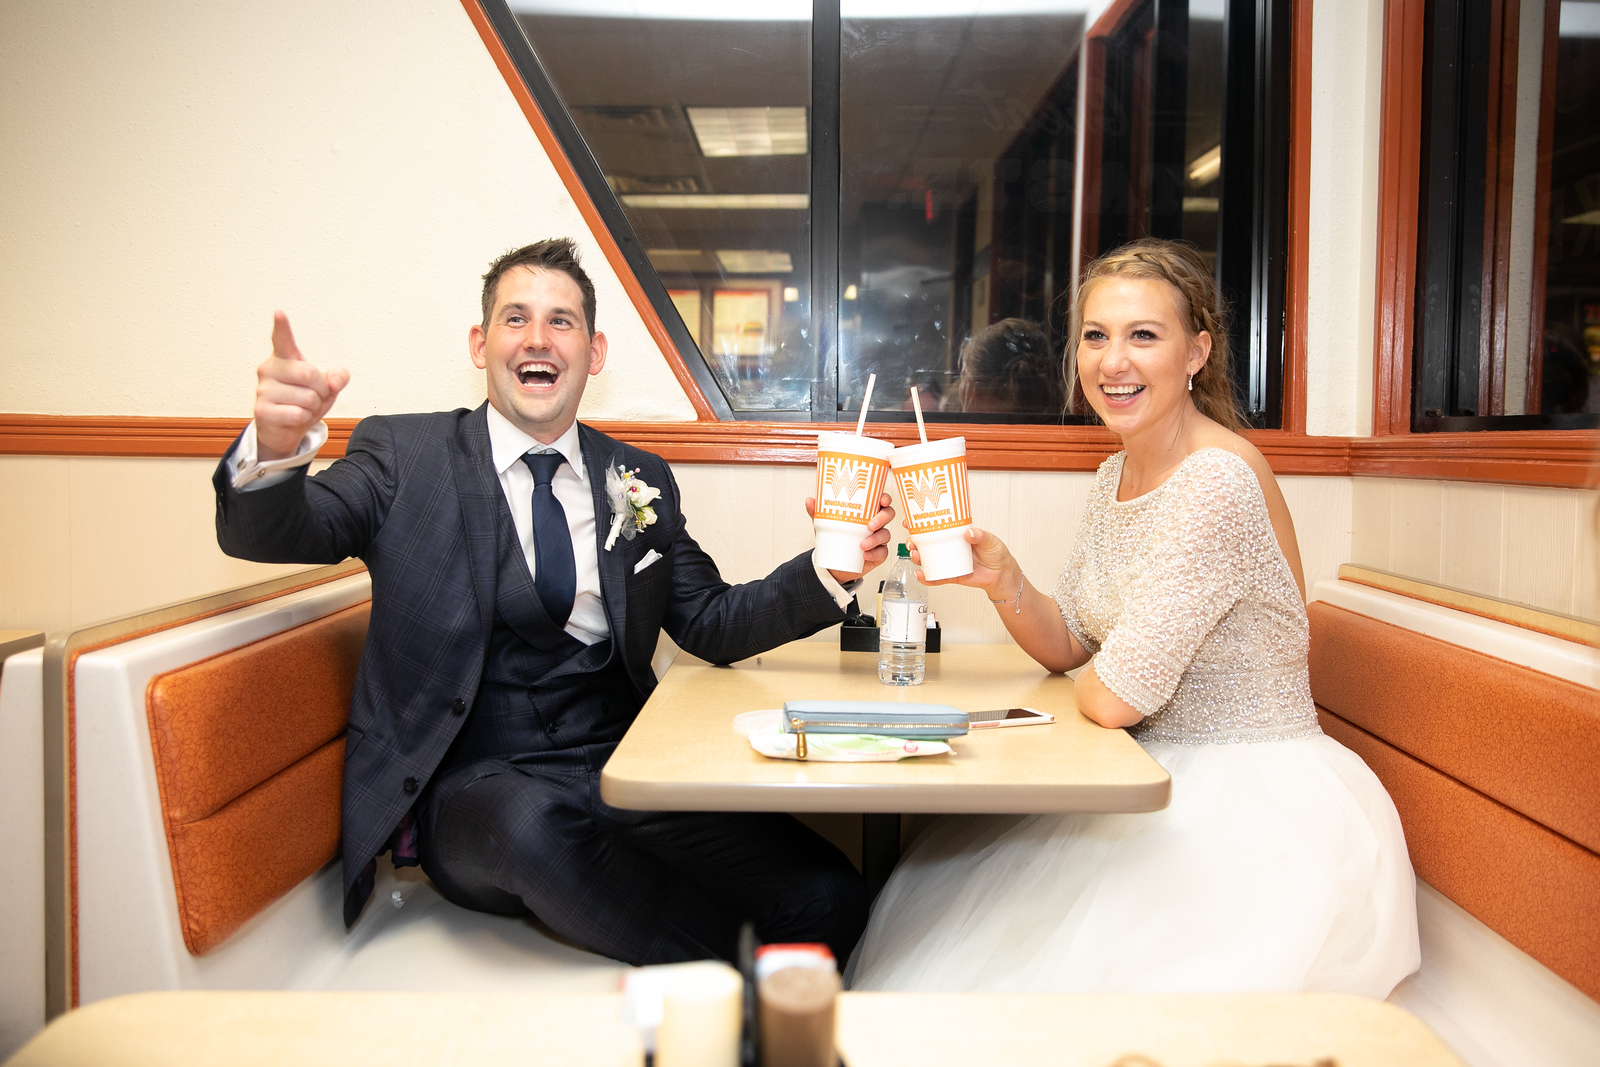 newlywed couple smiling at a fastfood restaurant as they cheers their styrofoam cups